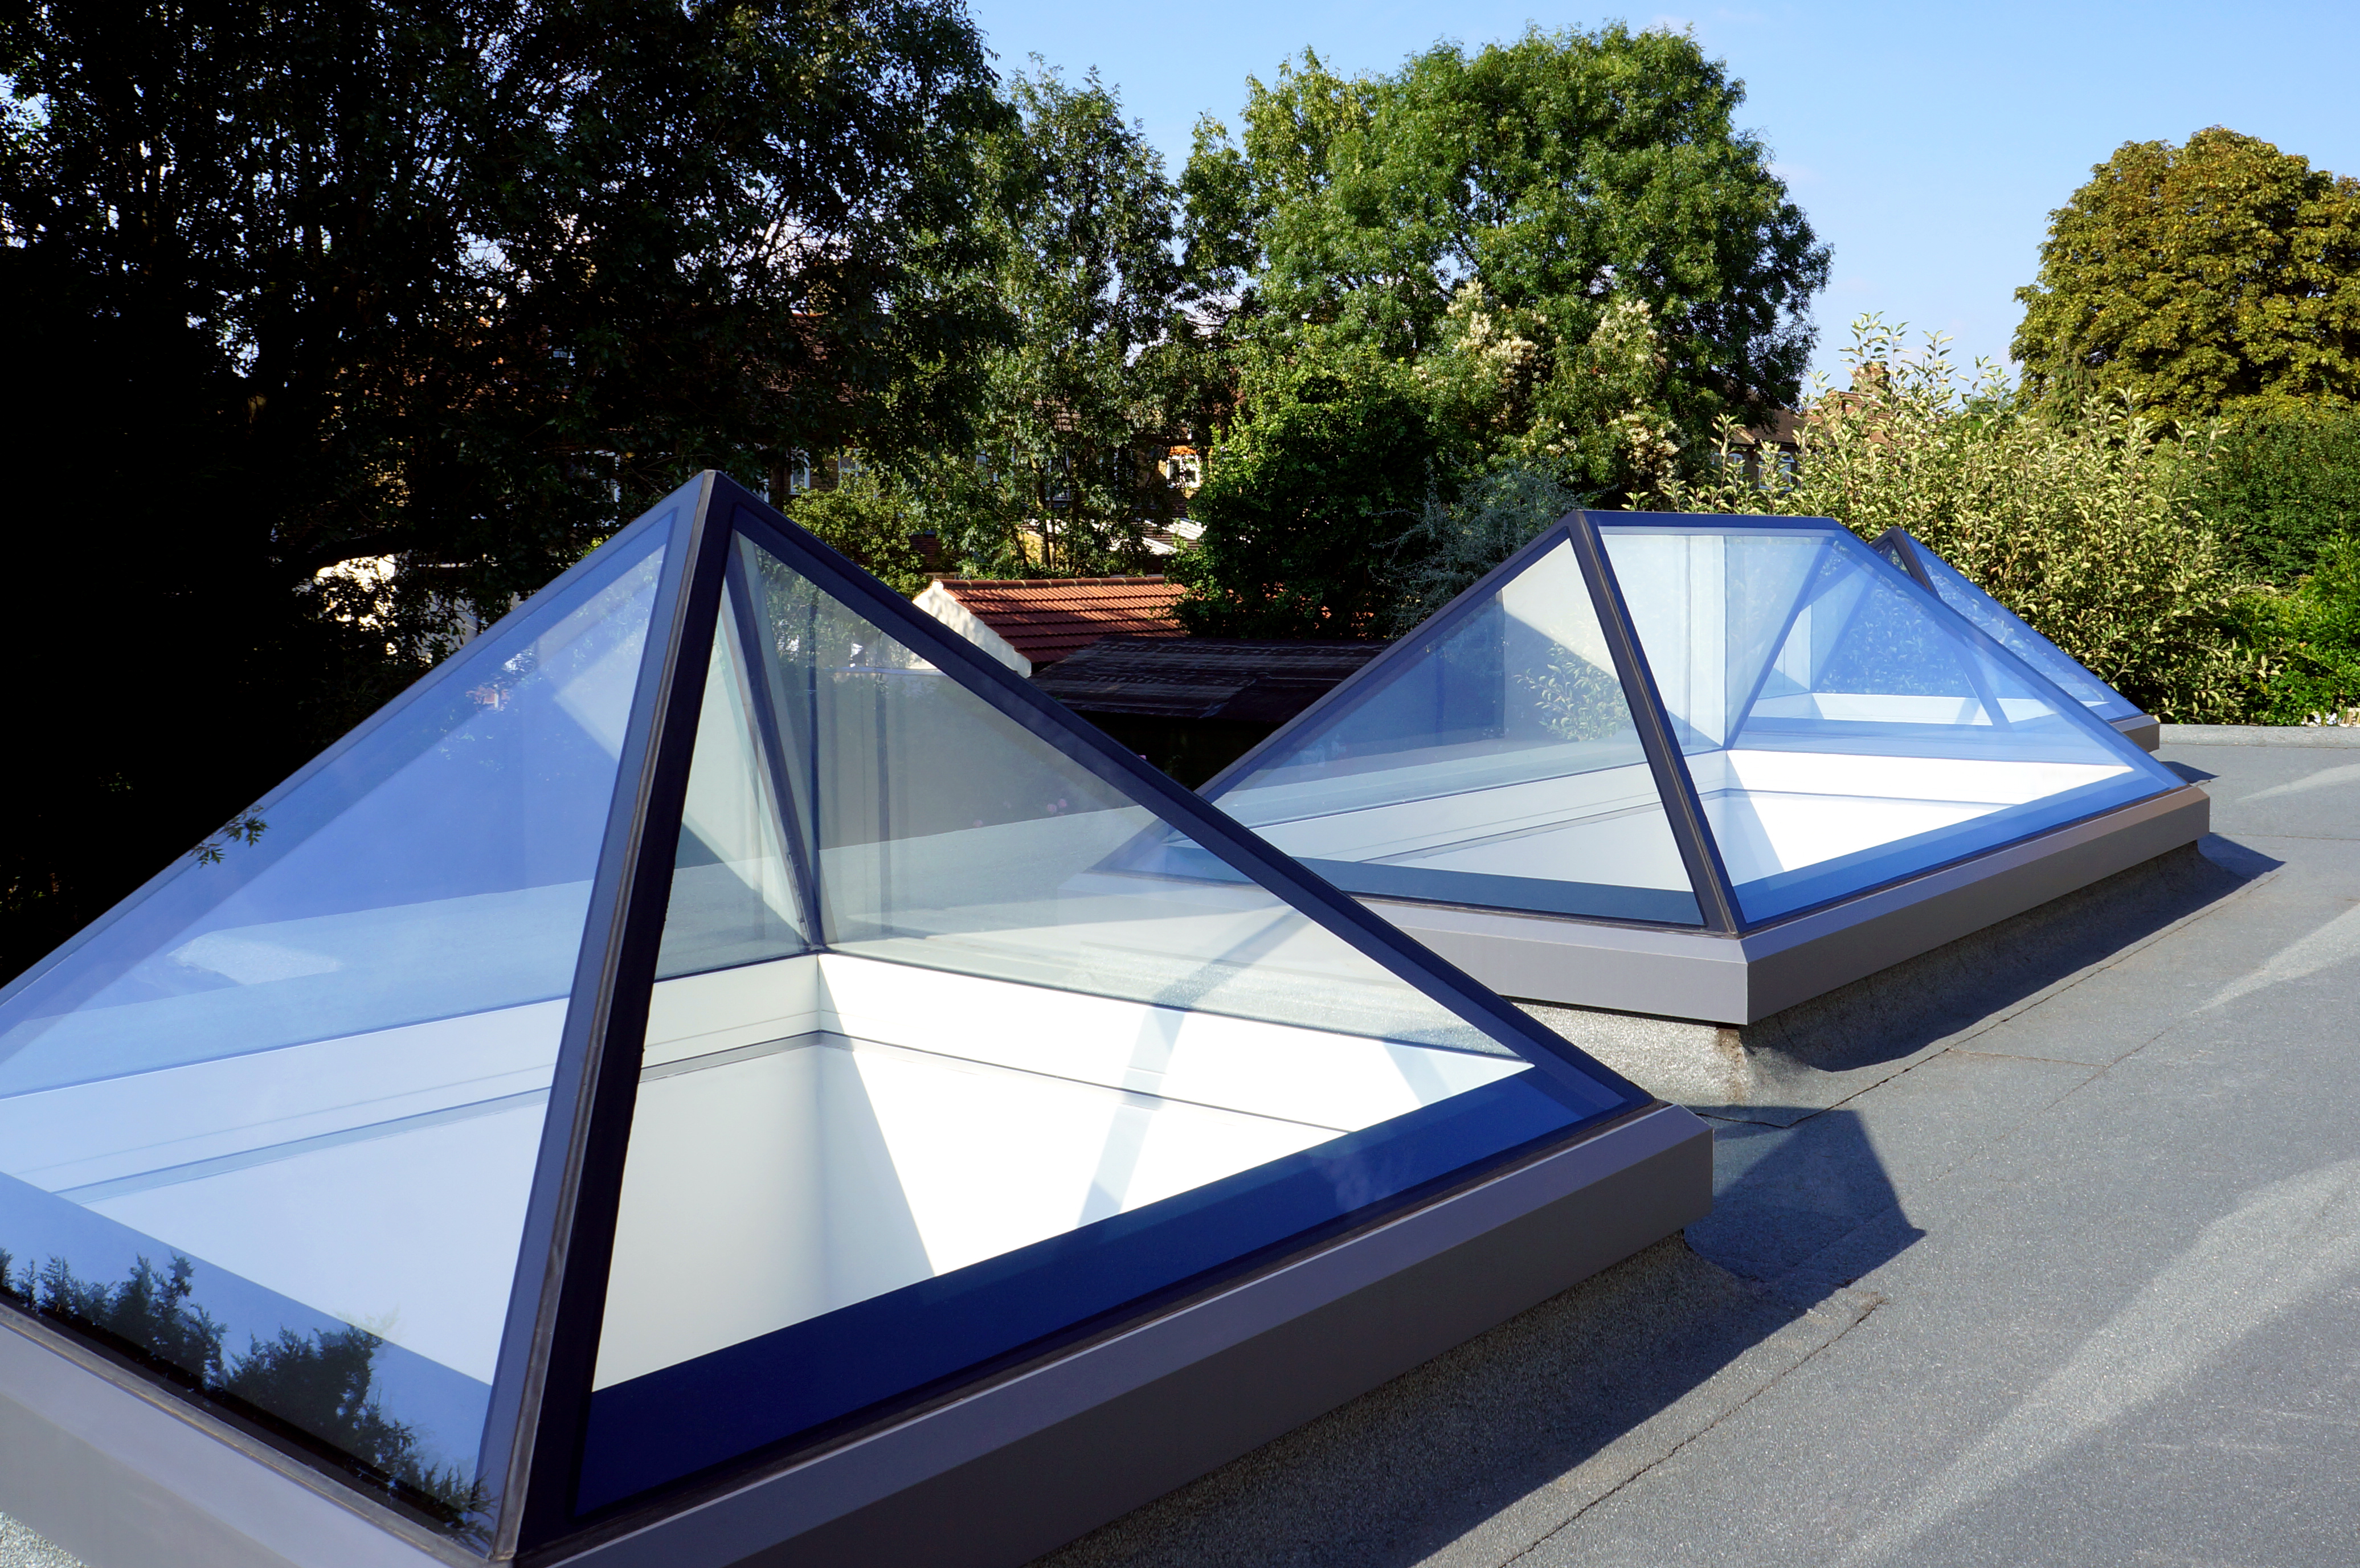 rooftop pyramid skylights